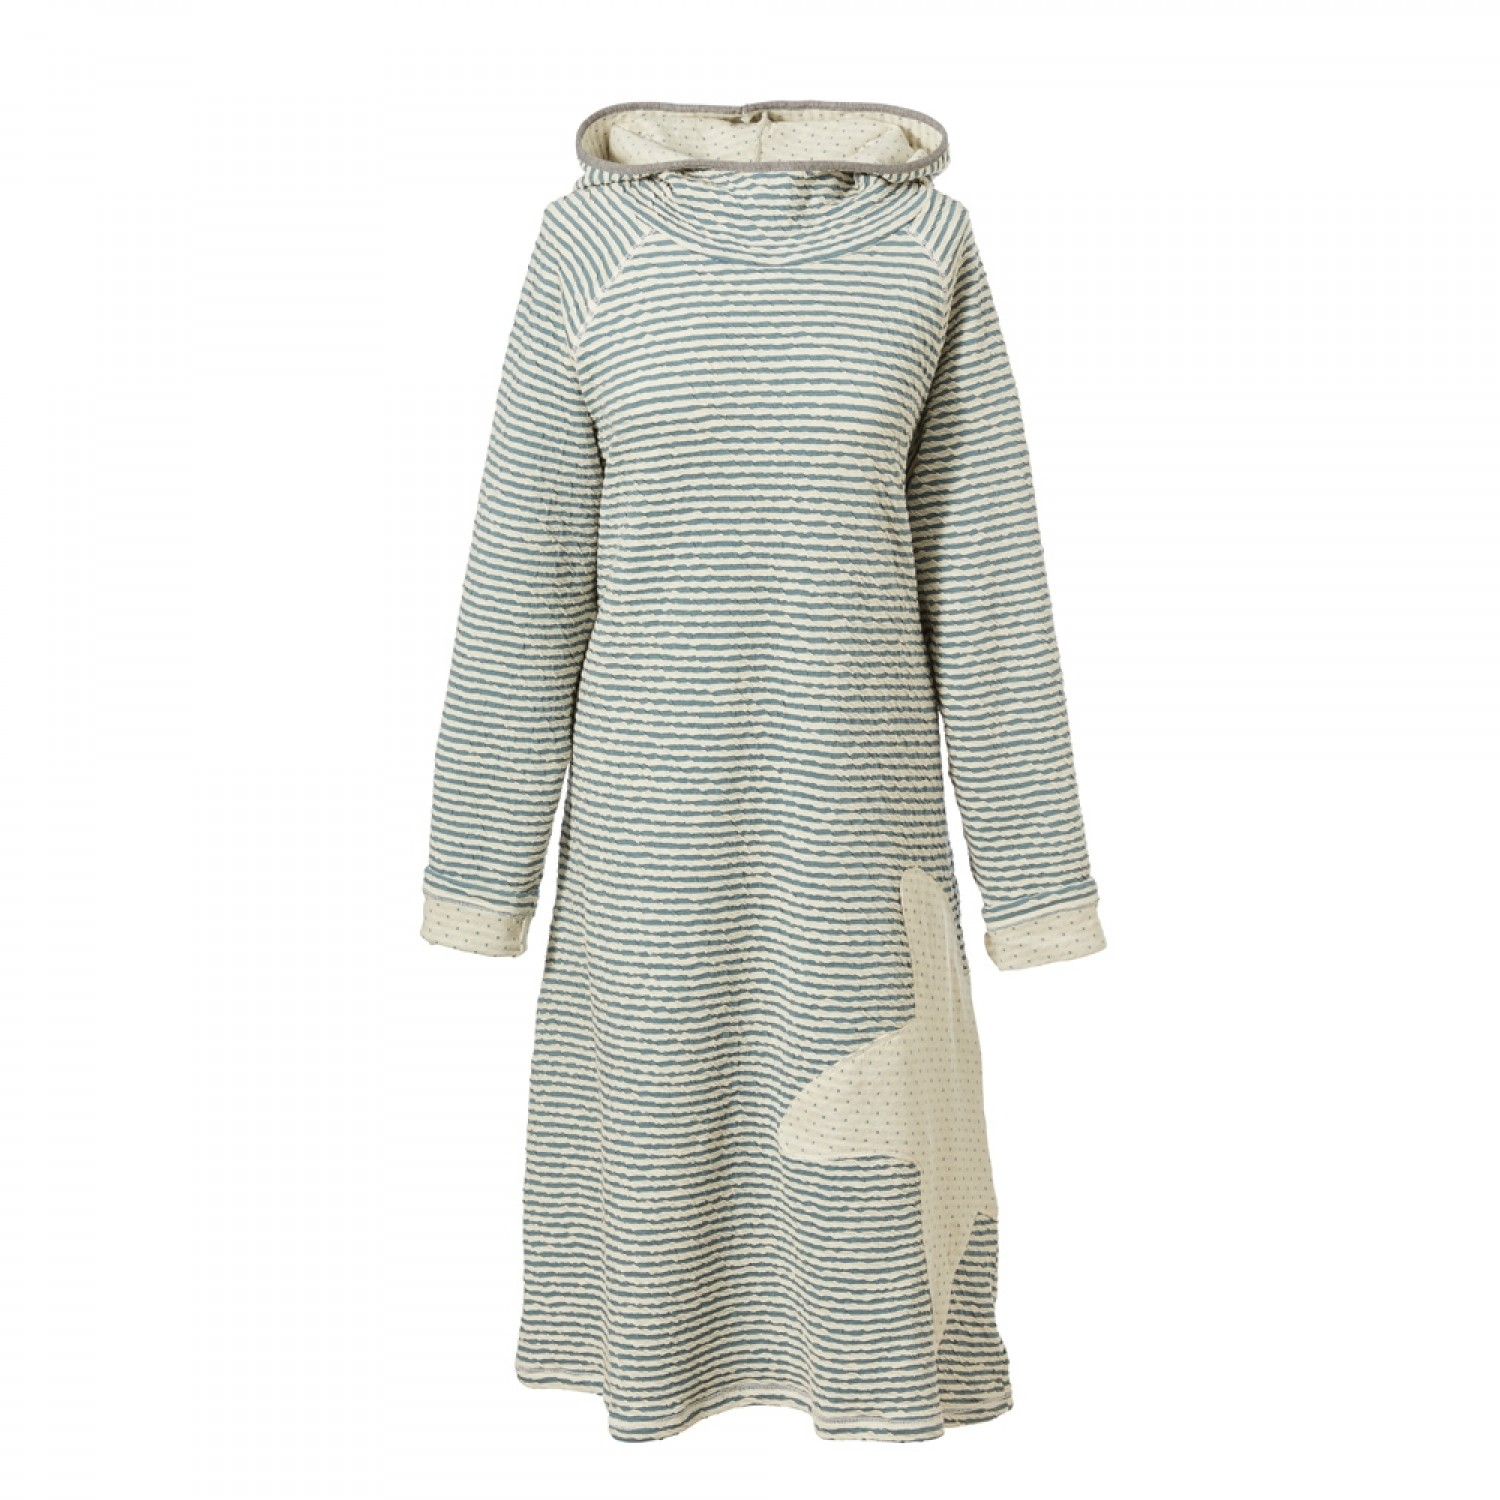 Maritime Beach Dress with Hood - Eco Cotton | early fish